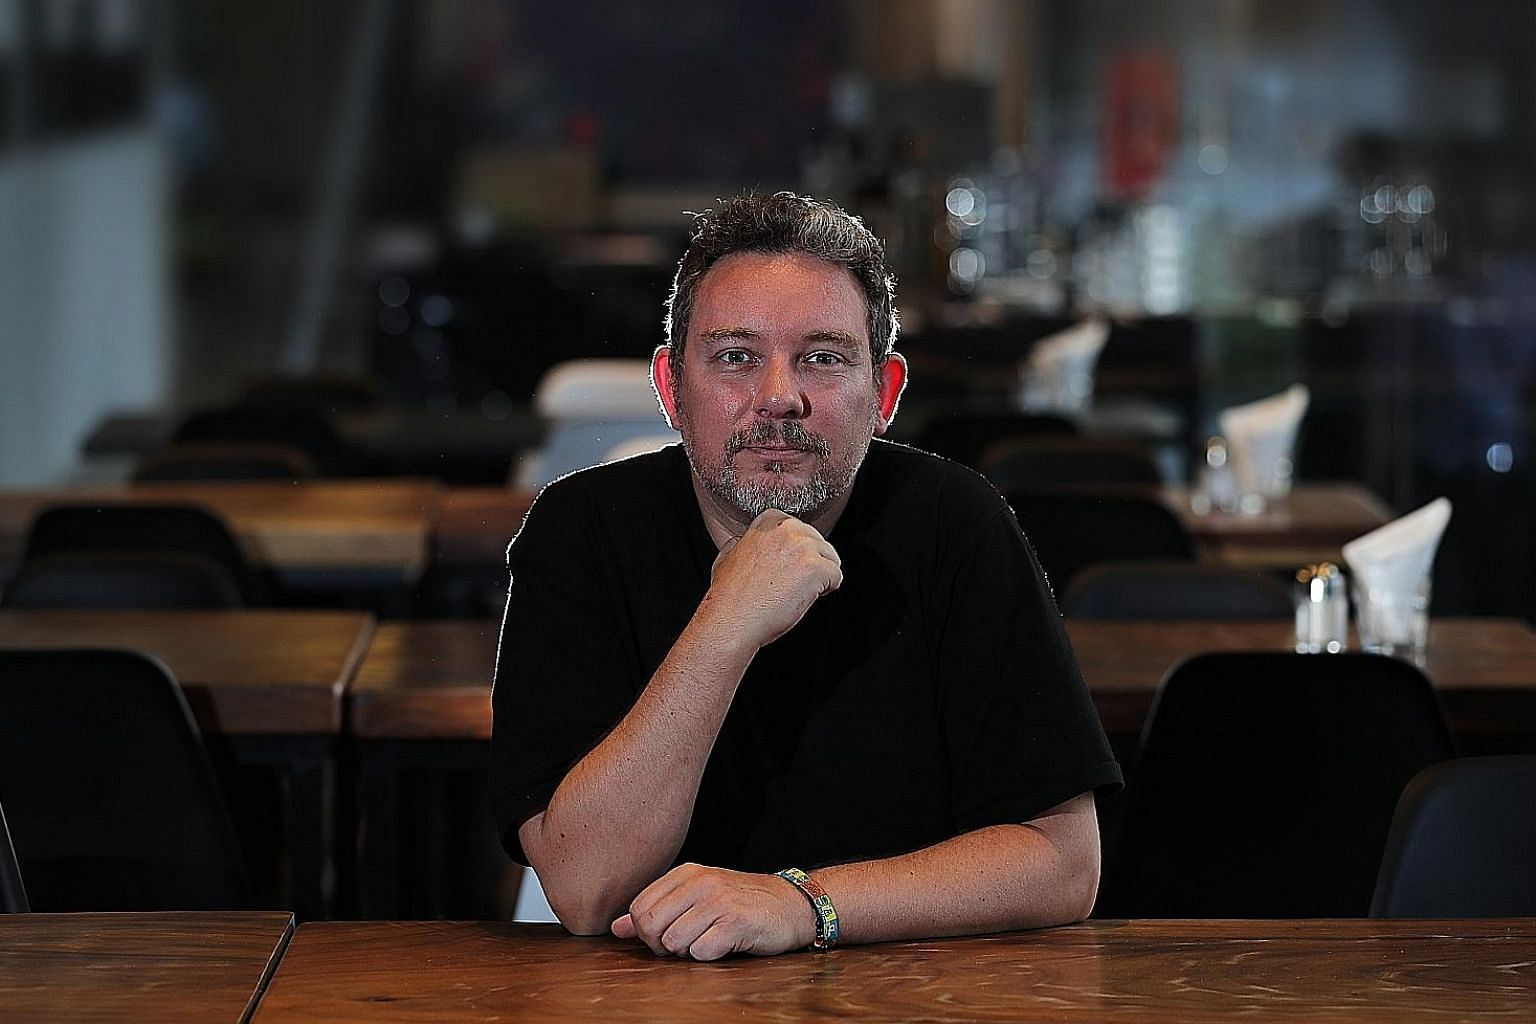 Albert Adria opened Cakes And Bubbles in London's Regent Street, his first brick-and-mortar restaurant outside Spain.